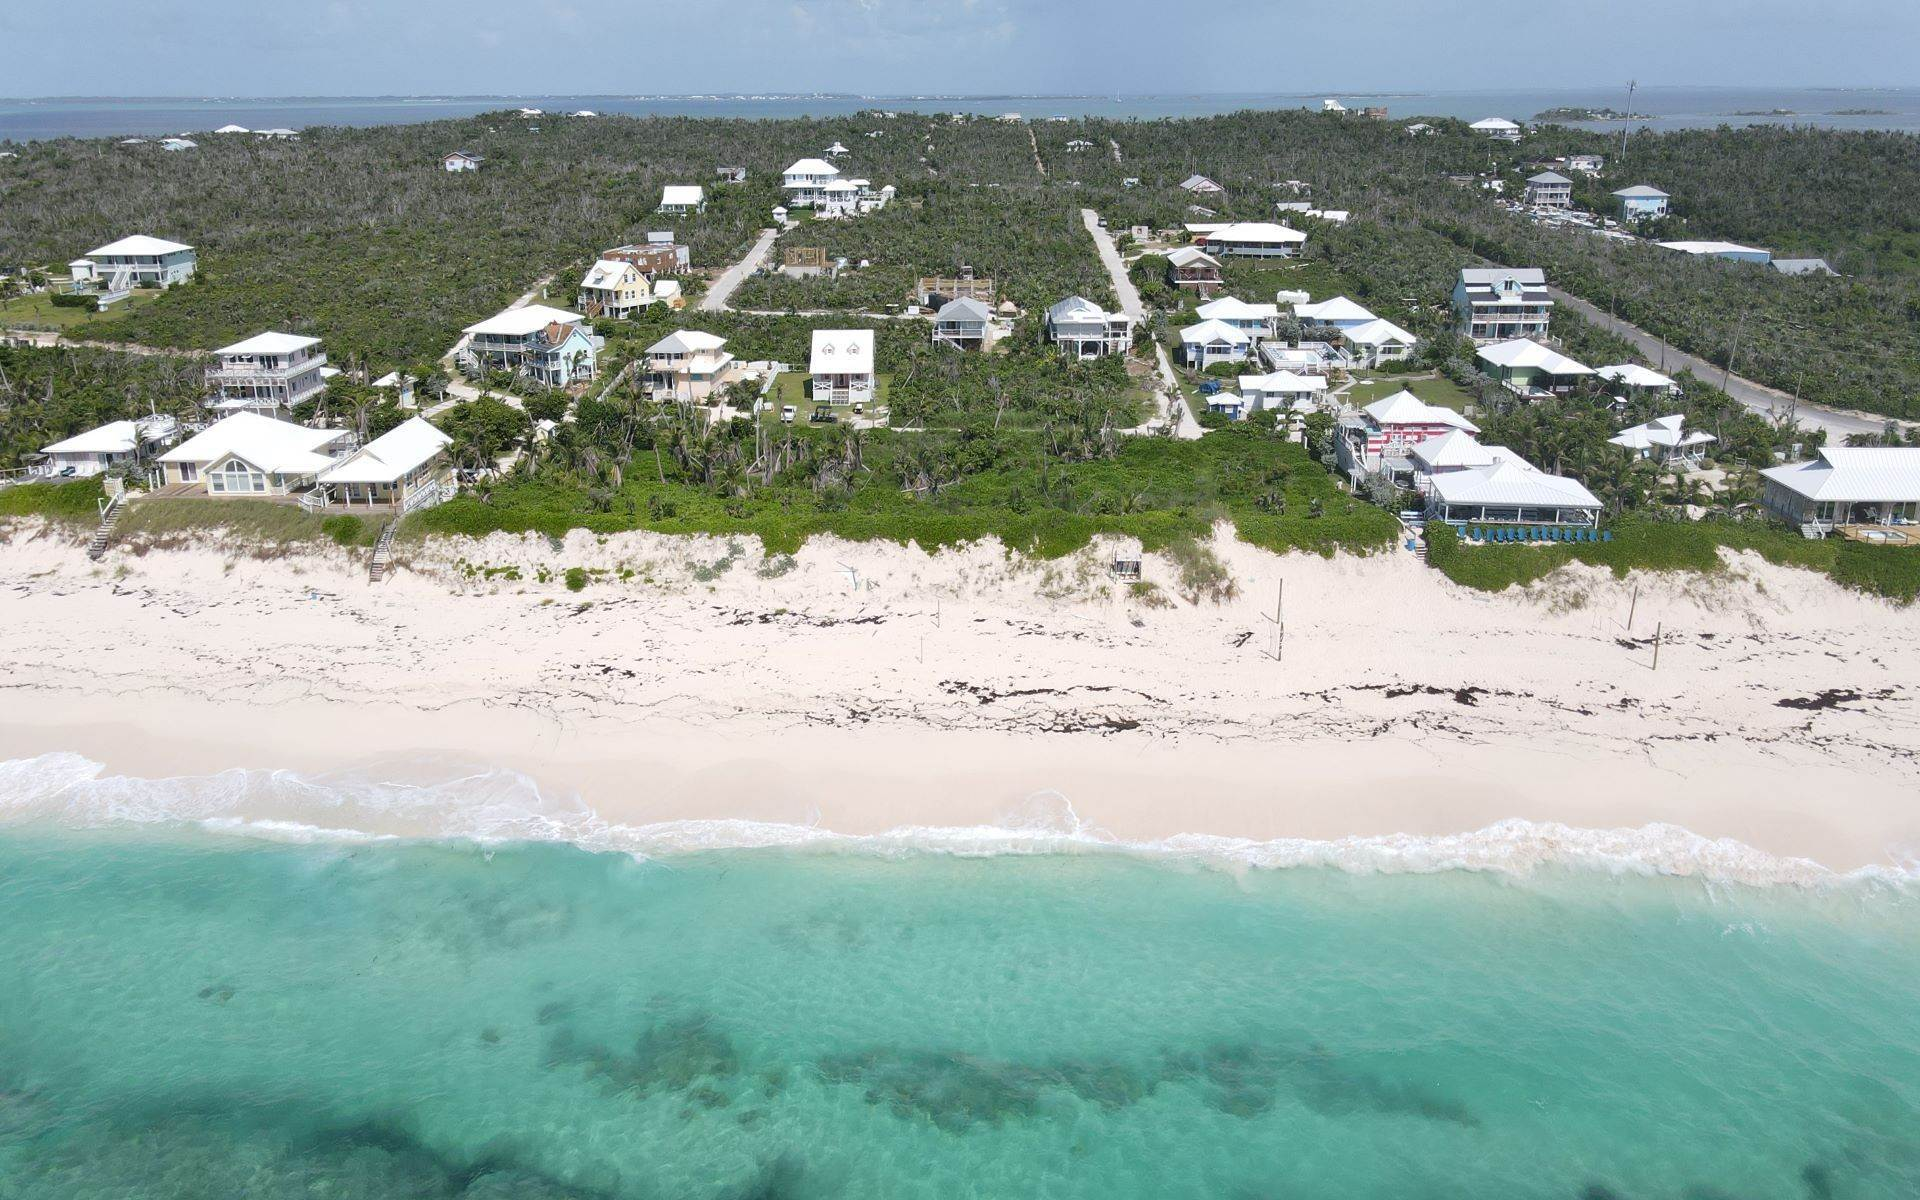 Land for Sale at Gorgeous Beachfront on Elbow Cay! - MLS 41449 Elbow Cay Hope Town, Abaco, Bahamas